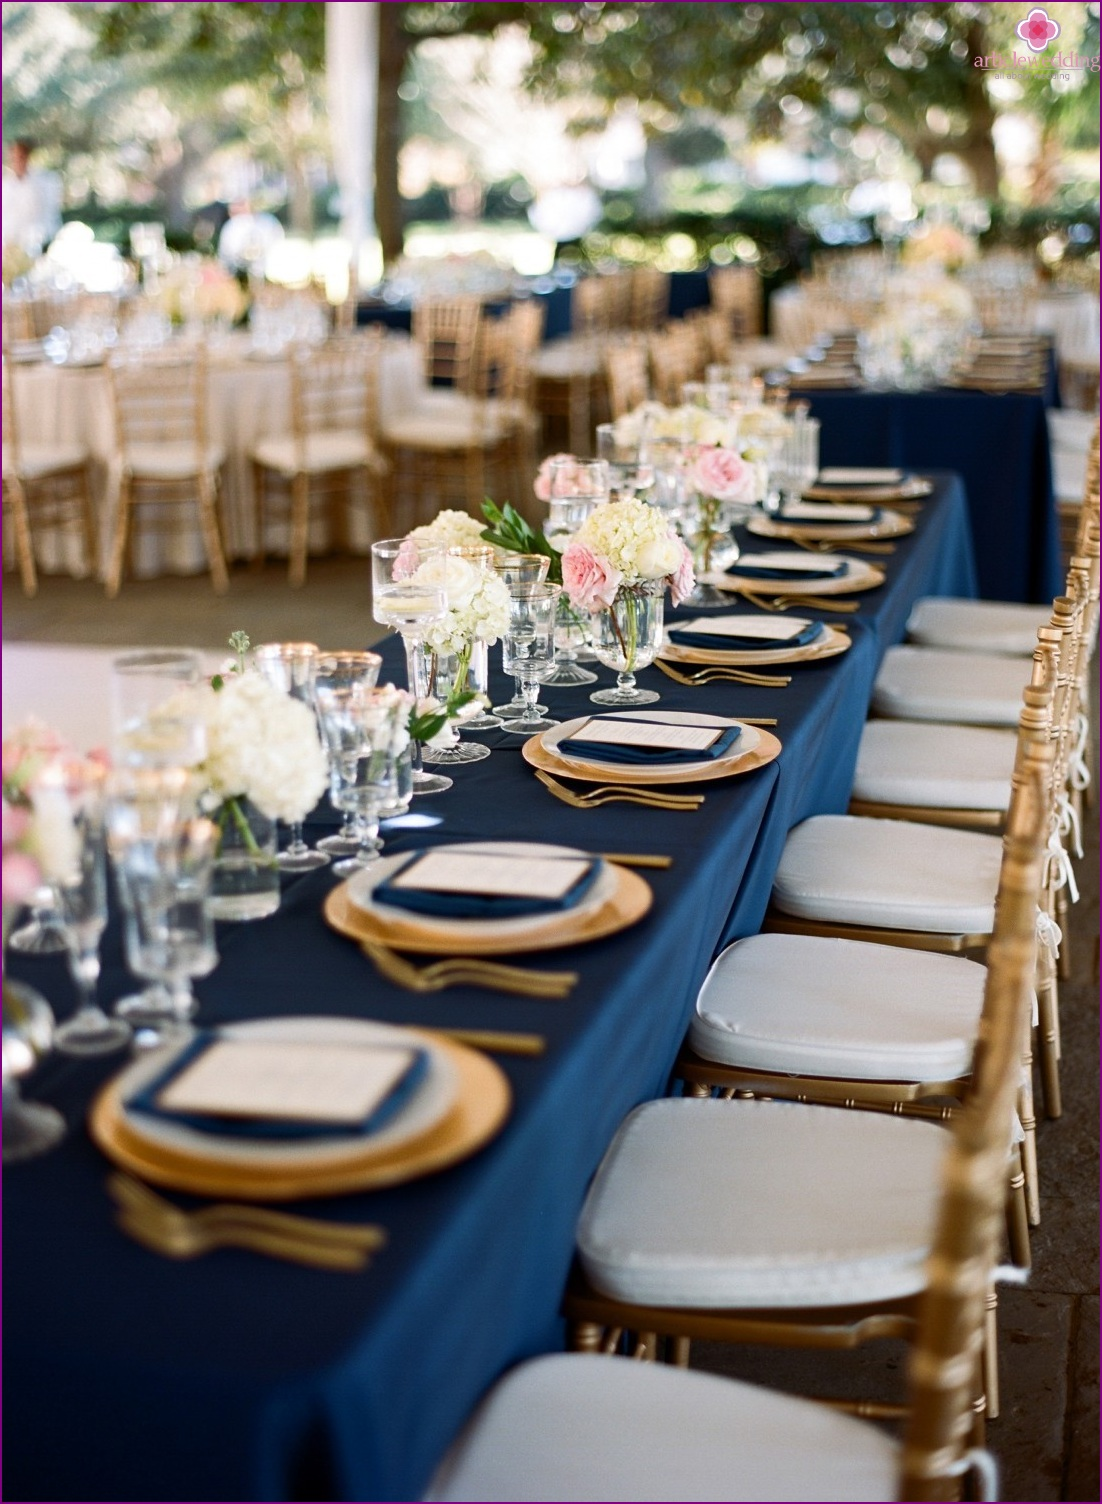 Wedding decor in blue and gold